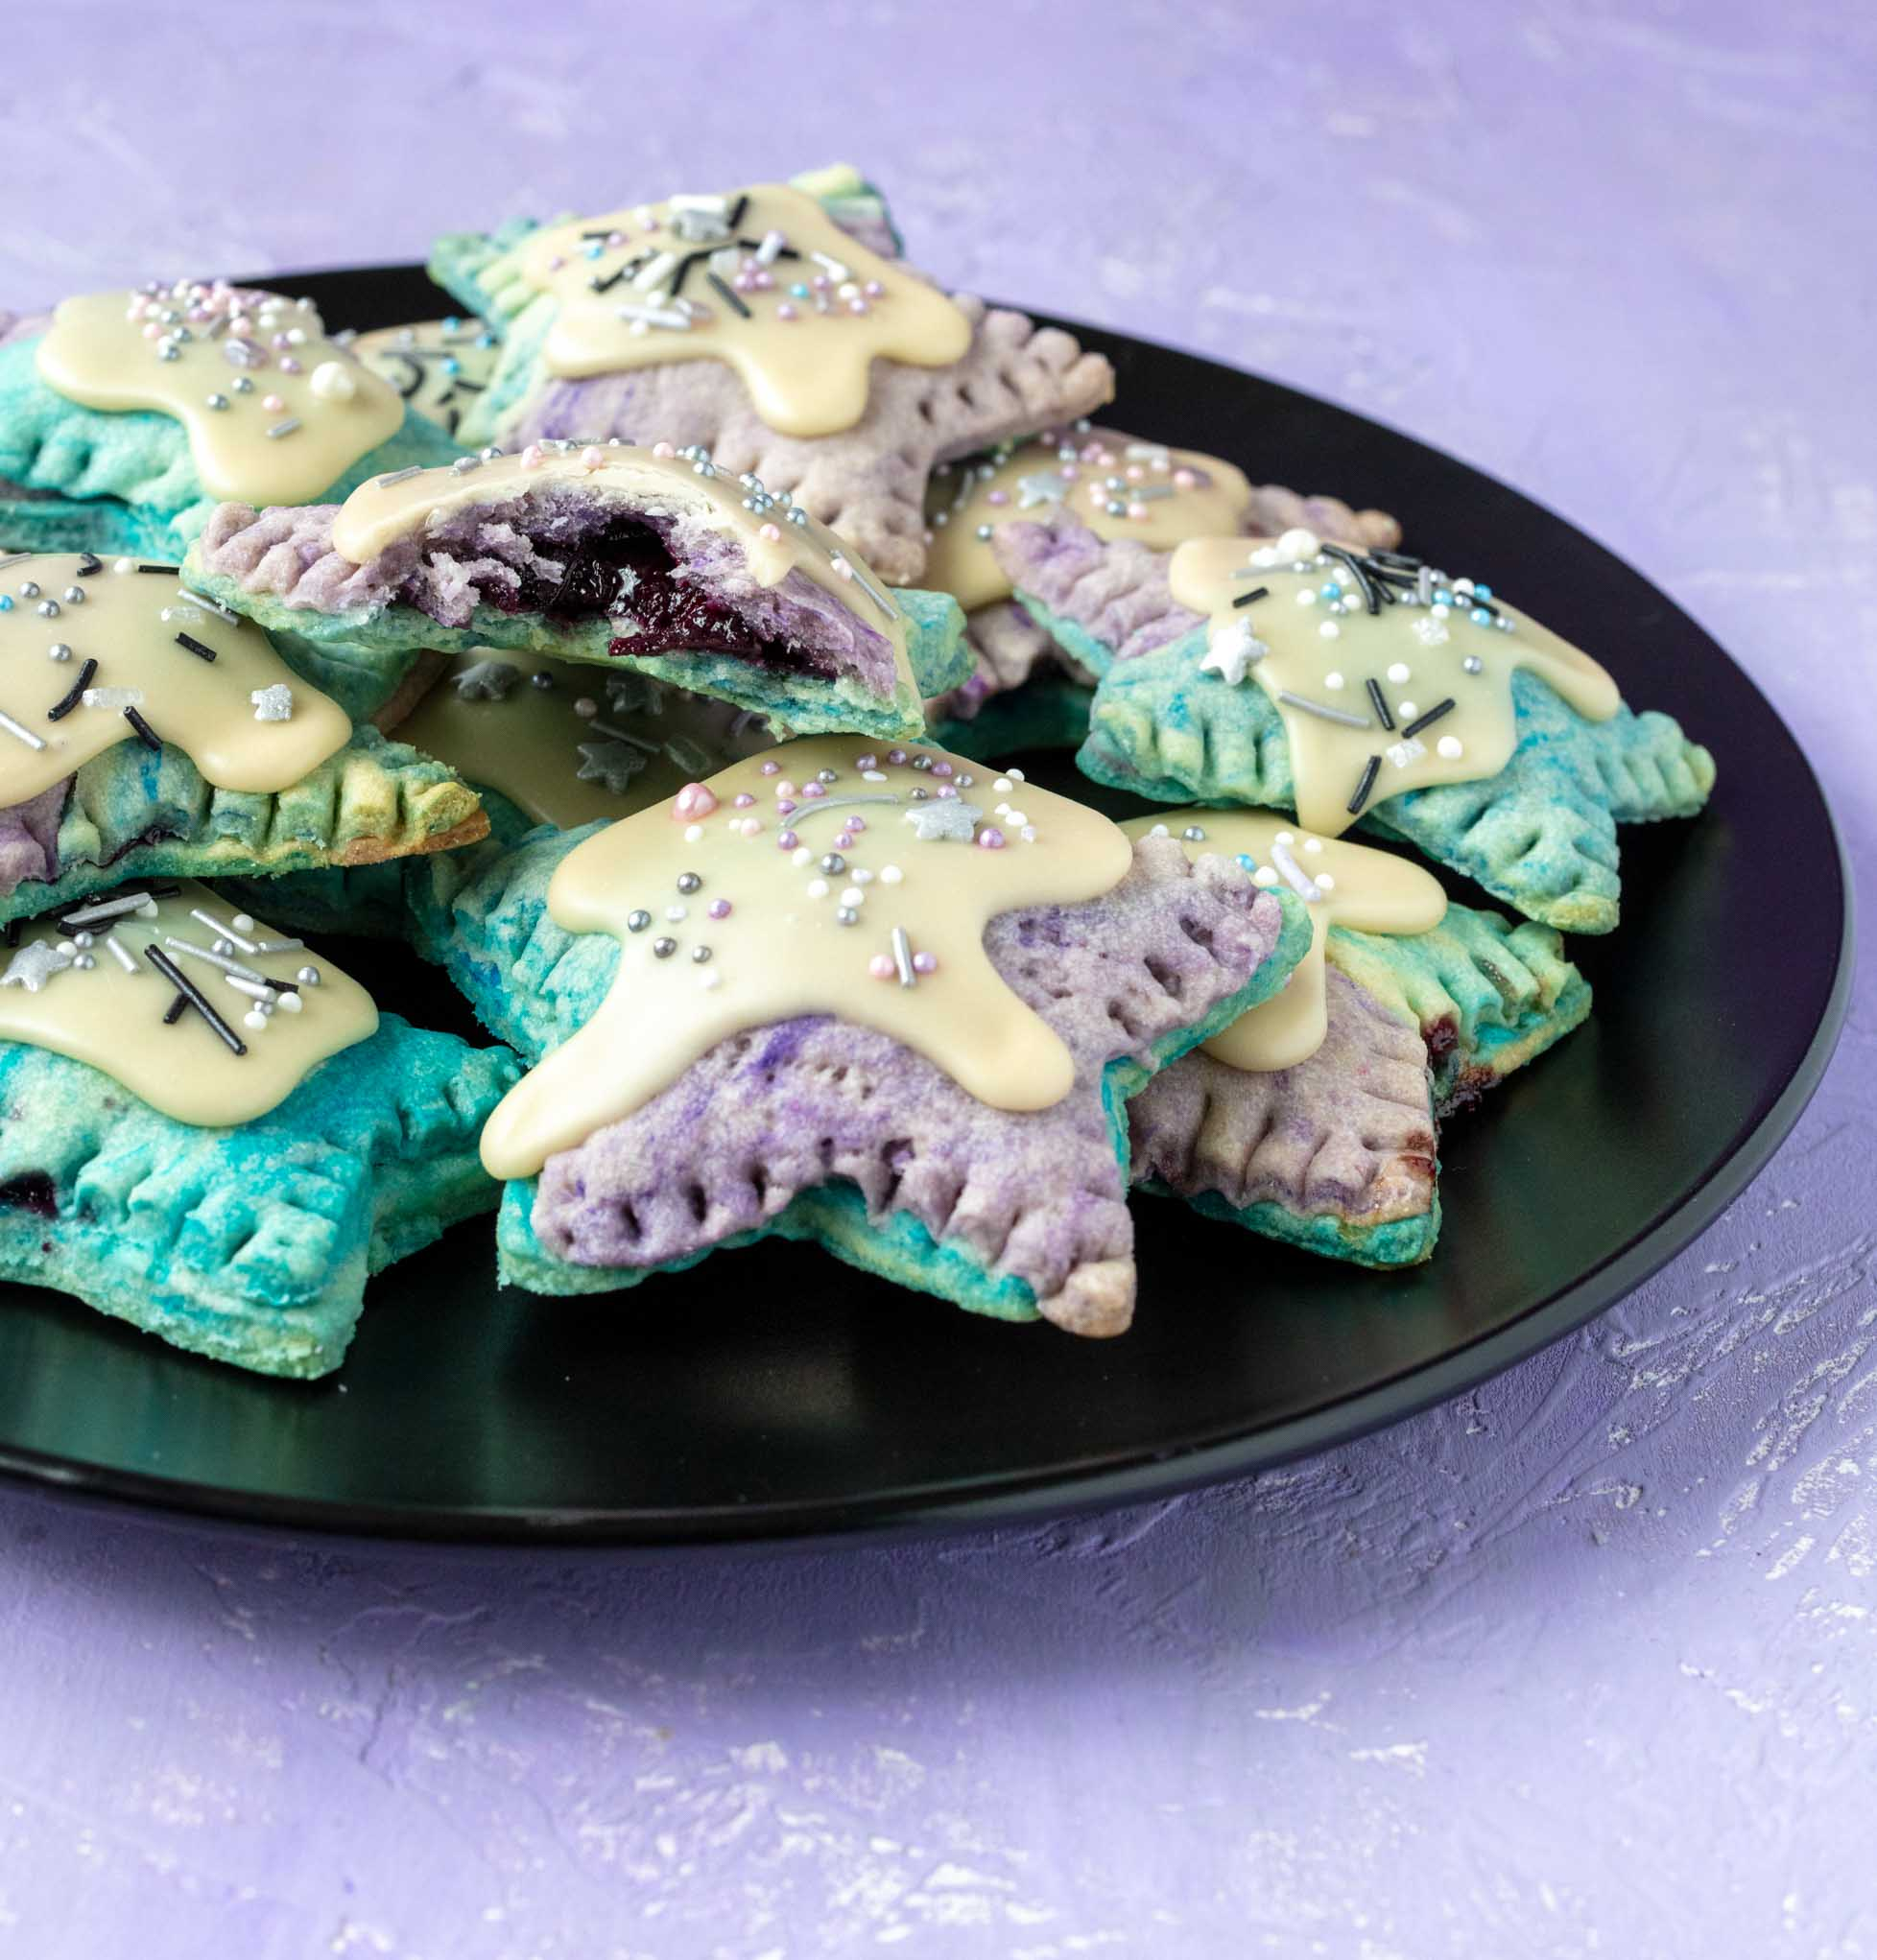 vegan teal and purple poptarts